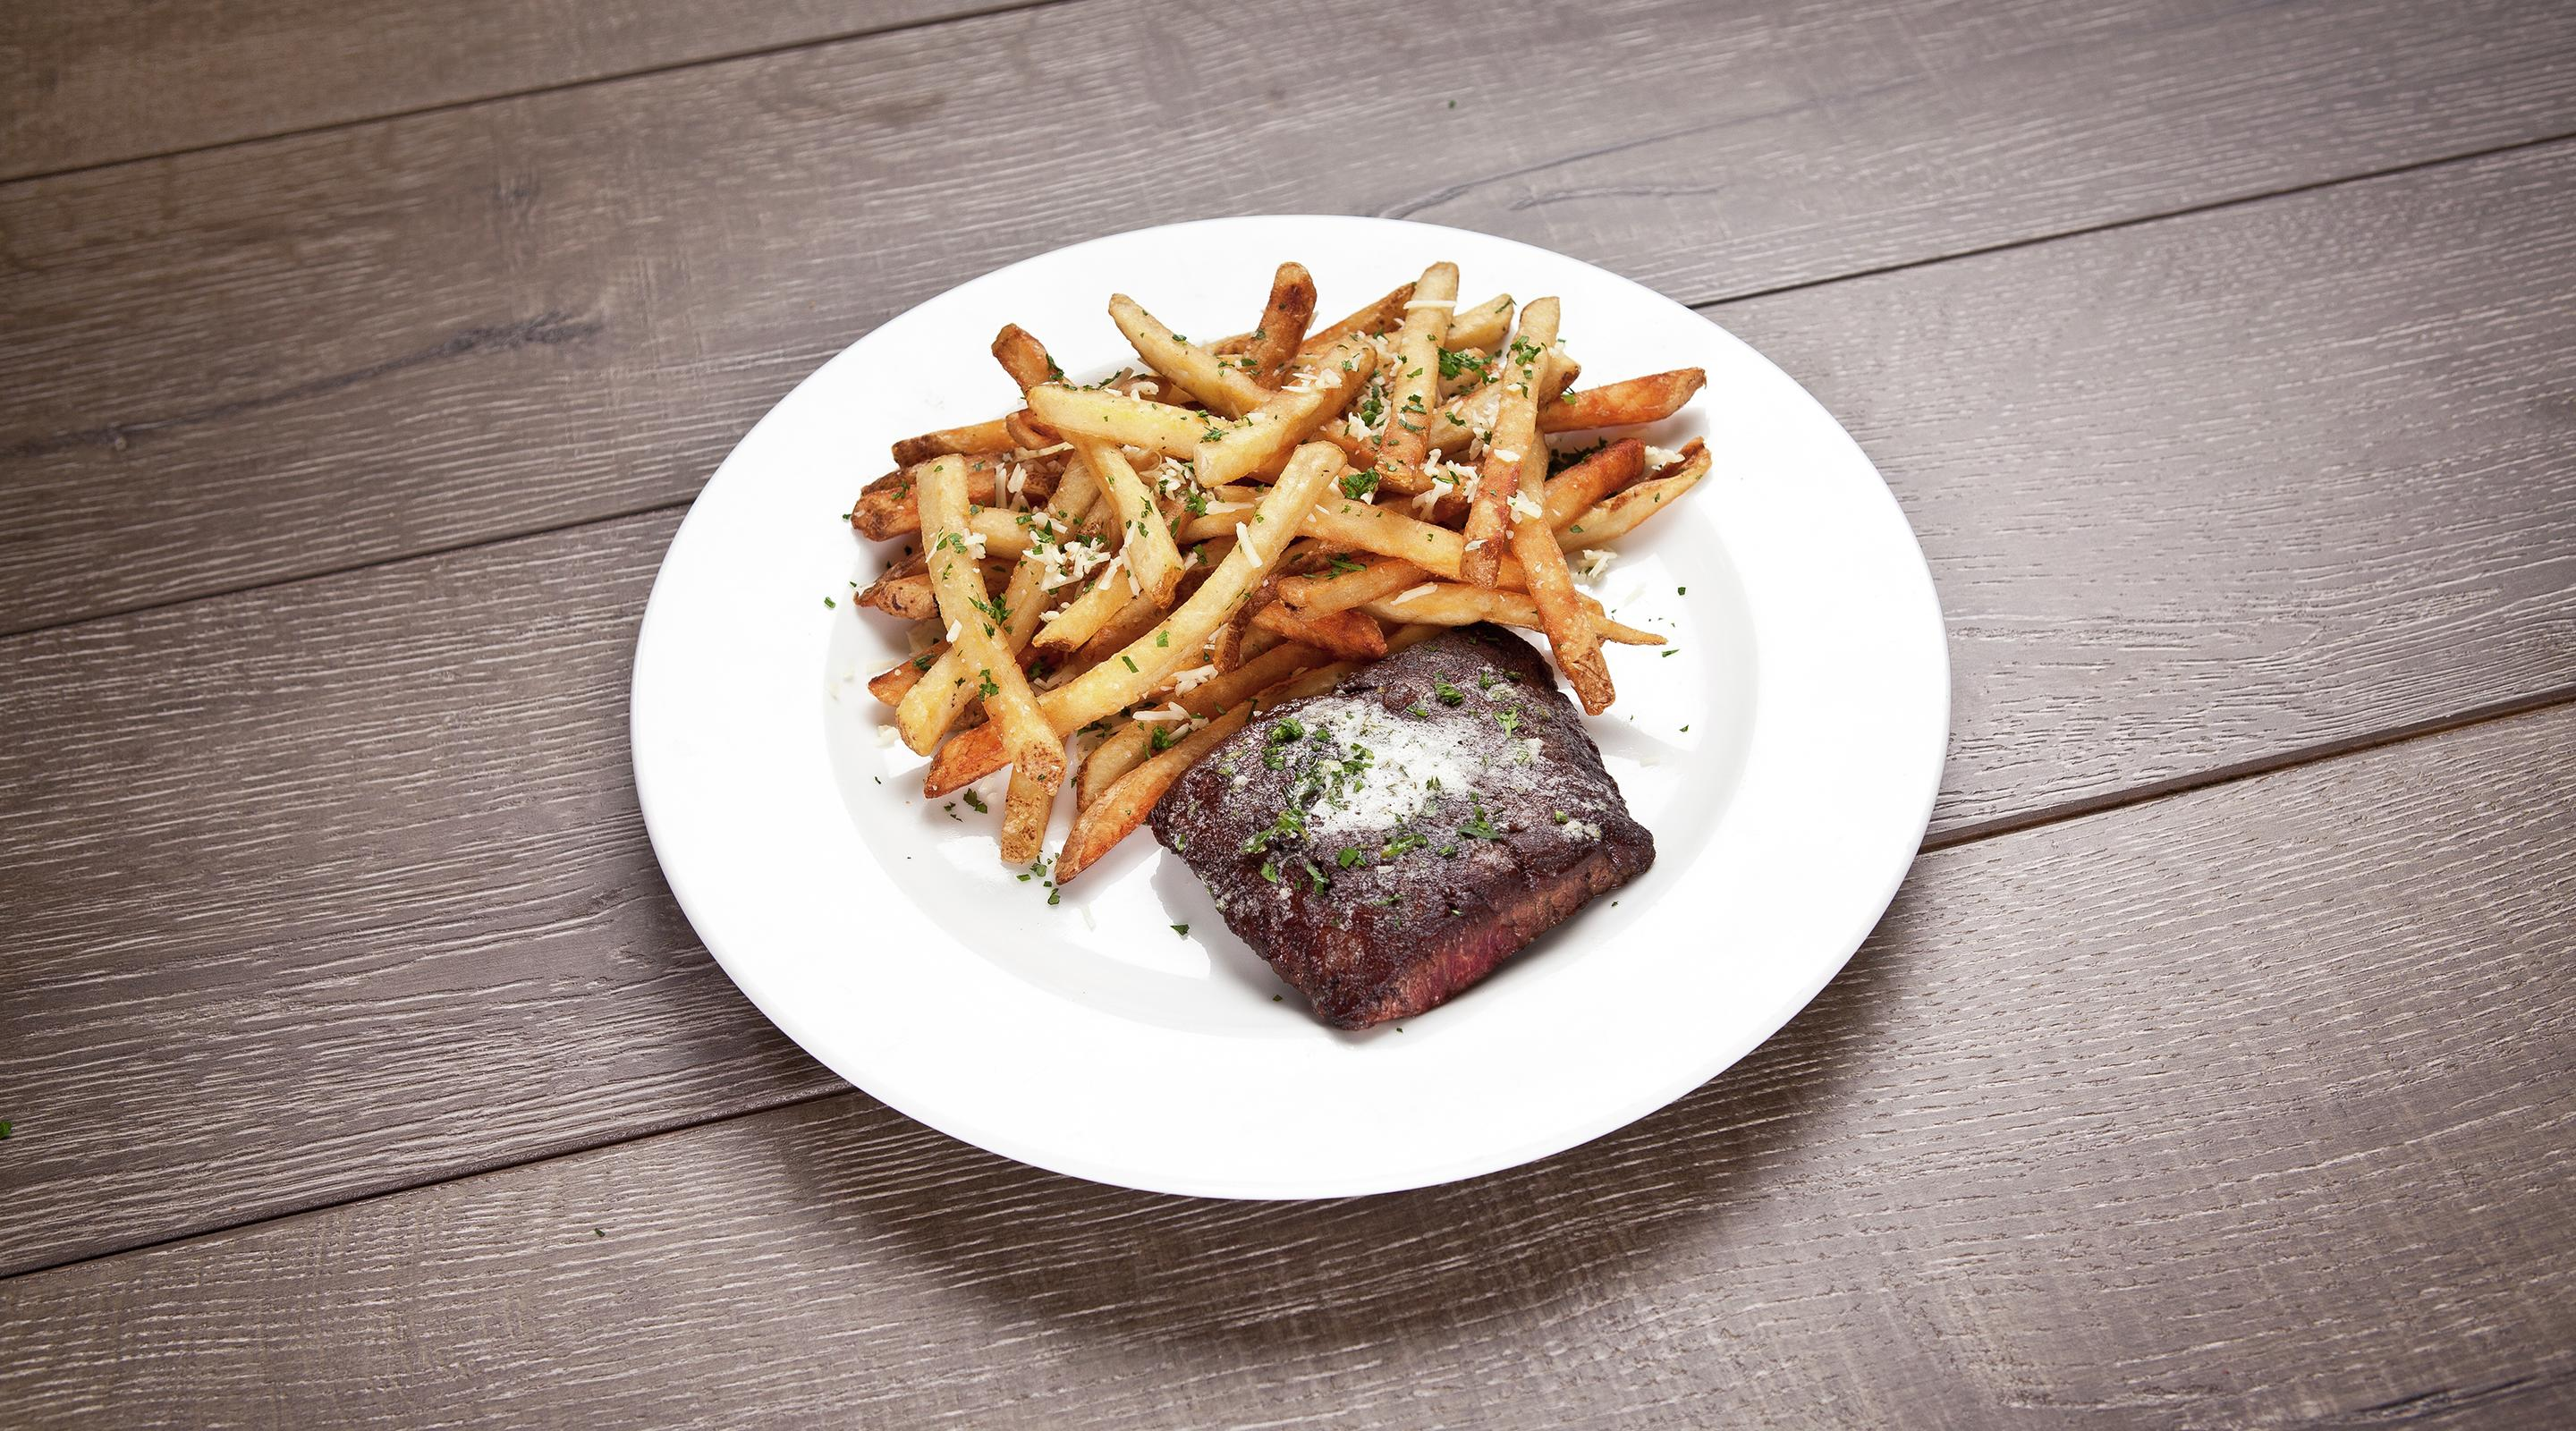 Come Try The Steak Frites at Seabreeze Cafe.